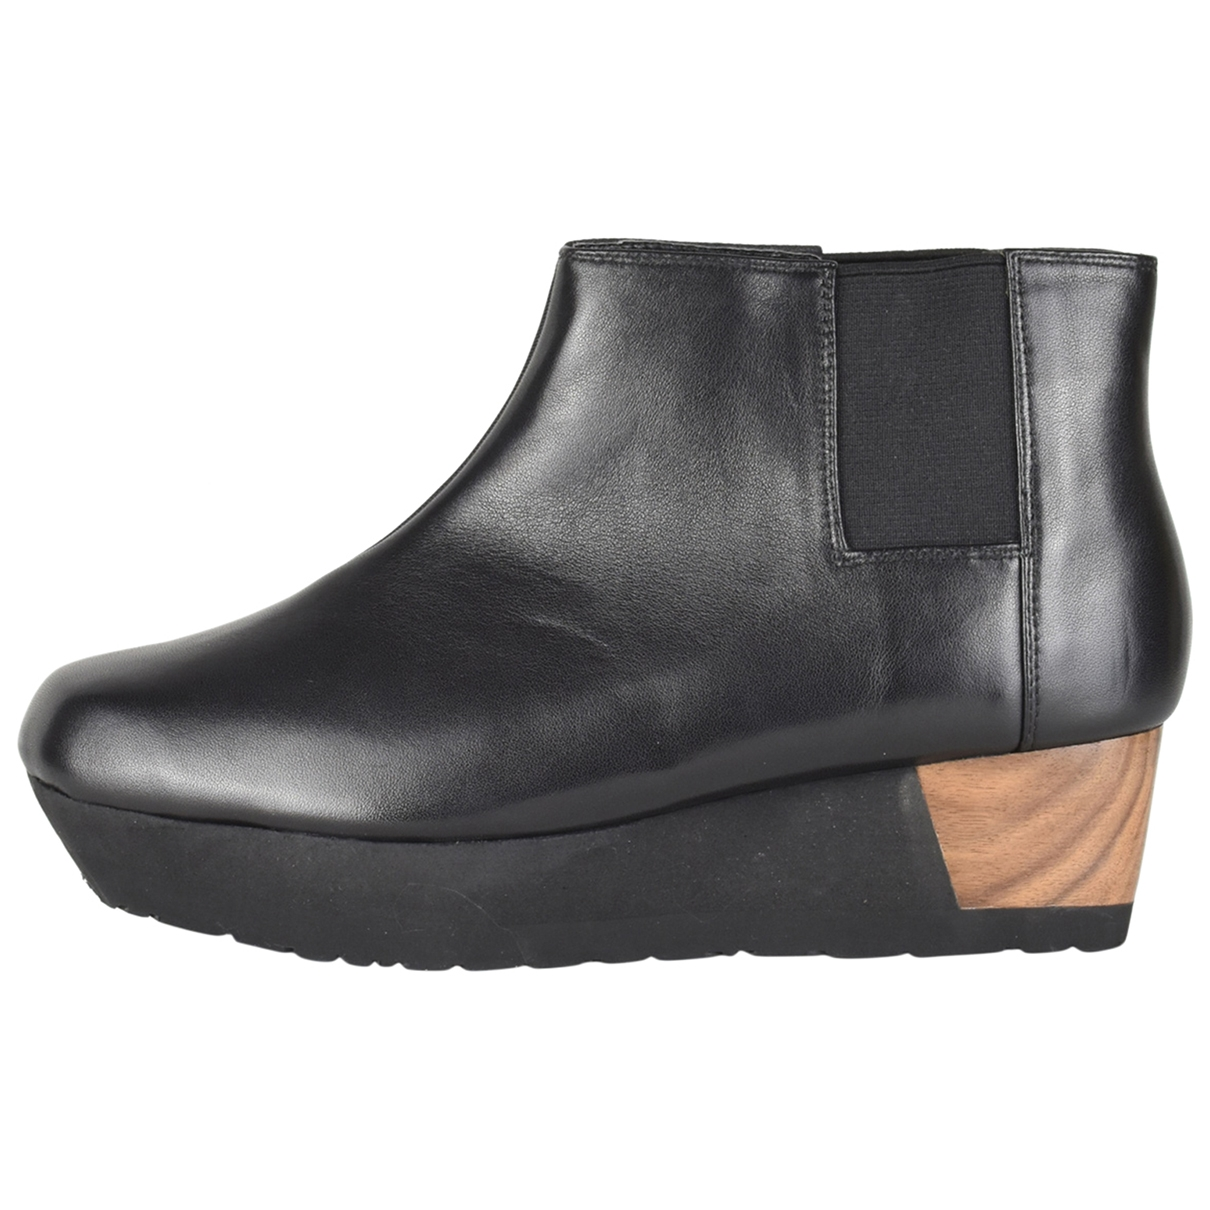 Issey Miyake \N Black Leather Ankle boots for Women 5 UK